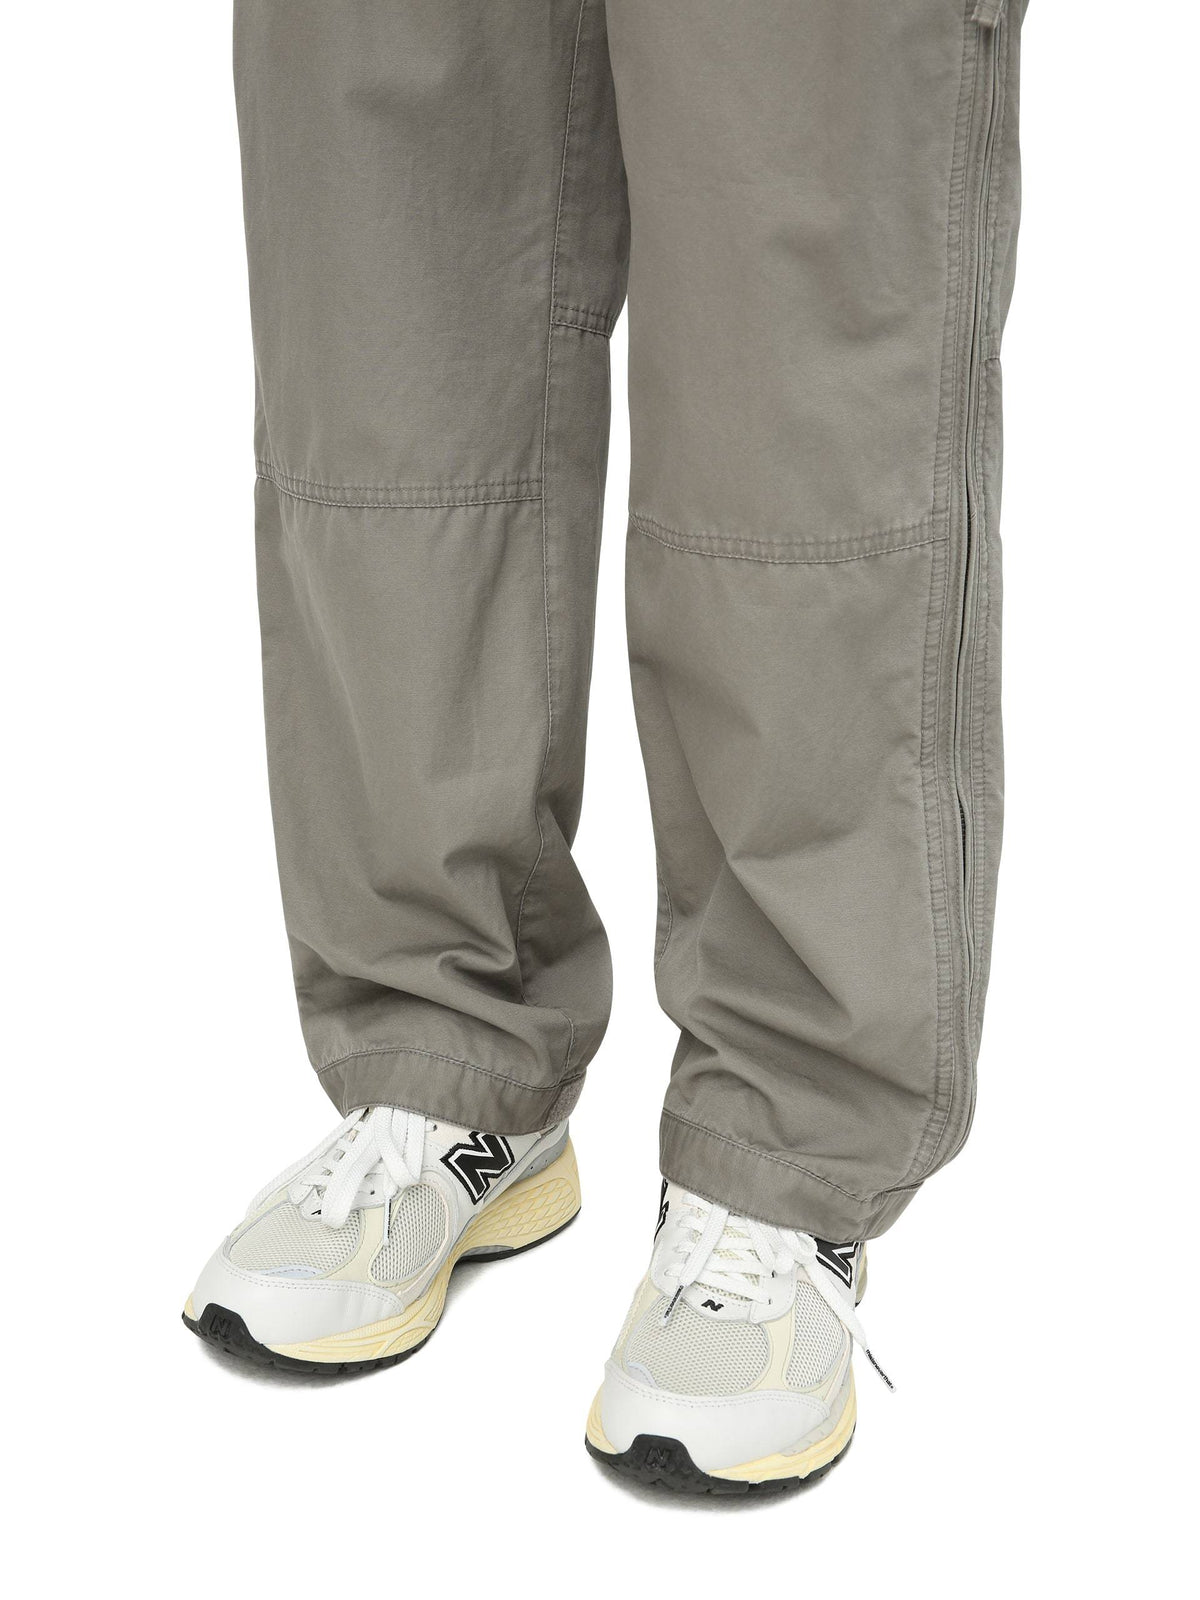 Side Zip Pant Pants